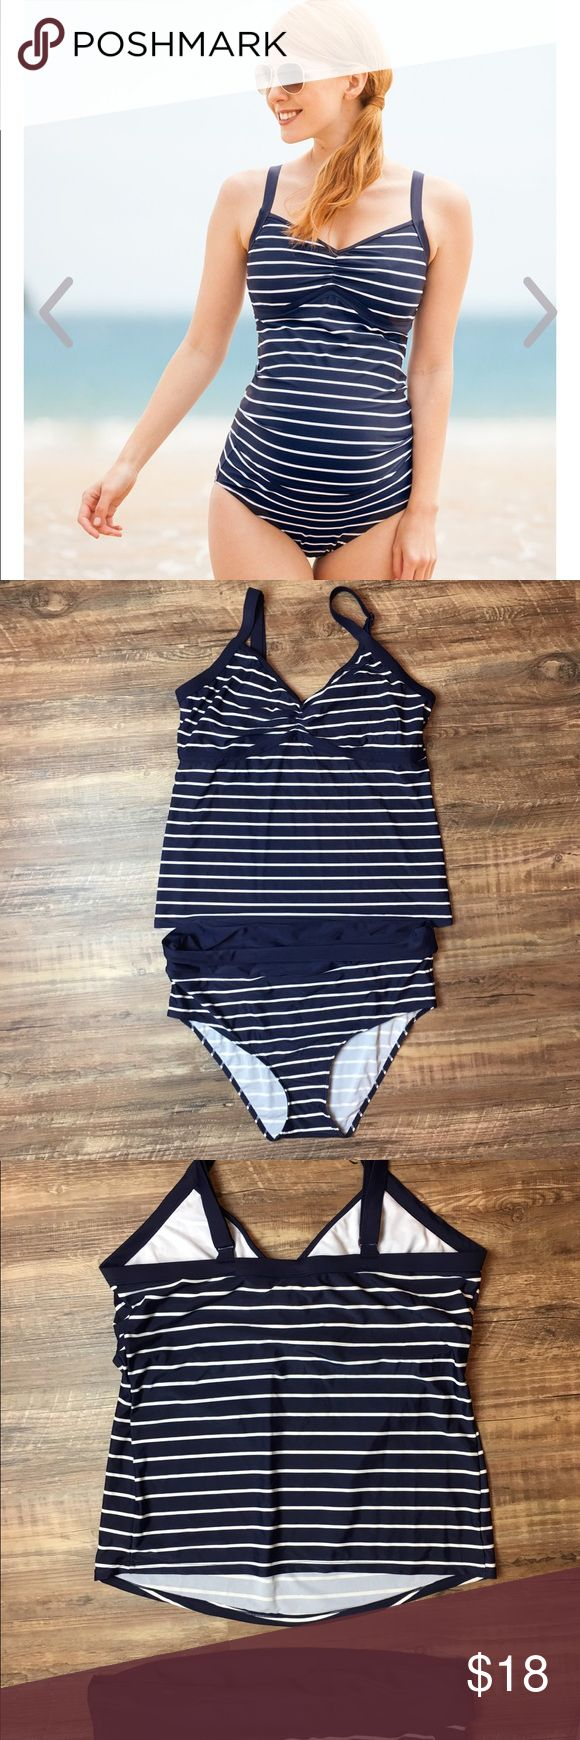 JoJo Maman Bébé Maternity Tankini Excellent Used Condition. Rated one of the best brands for maternity swimwear.   Navy & White Stripe Maternity Tankini is a vacation and pool must-have. The stylish tankini offers the freedom of a 2-piece with all the coverage and support of a 1-piece. The Breton-inspired styling is very chic, ensuring you look and feel your best.  Internal shelf bra Adjustable, wide straps Wide waistband to wear under or over the belly Gathering detail to bust 82% Nylon…